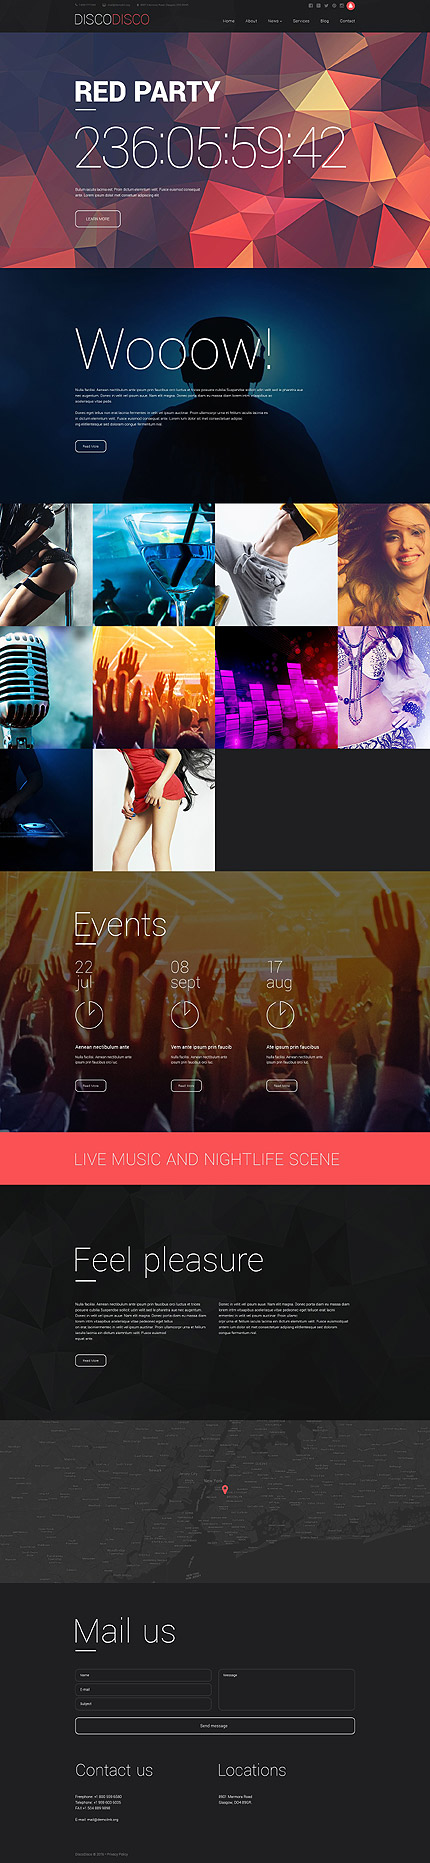 Night Club Most Popular website inspirations at your coffee break? Browse for more Drupal #templates! // Regular price: $75 // Sources available: .PSD, .PHP #Night Club #Most Popular #Drupal